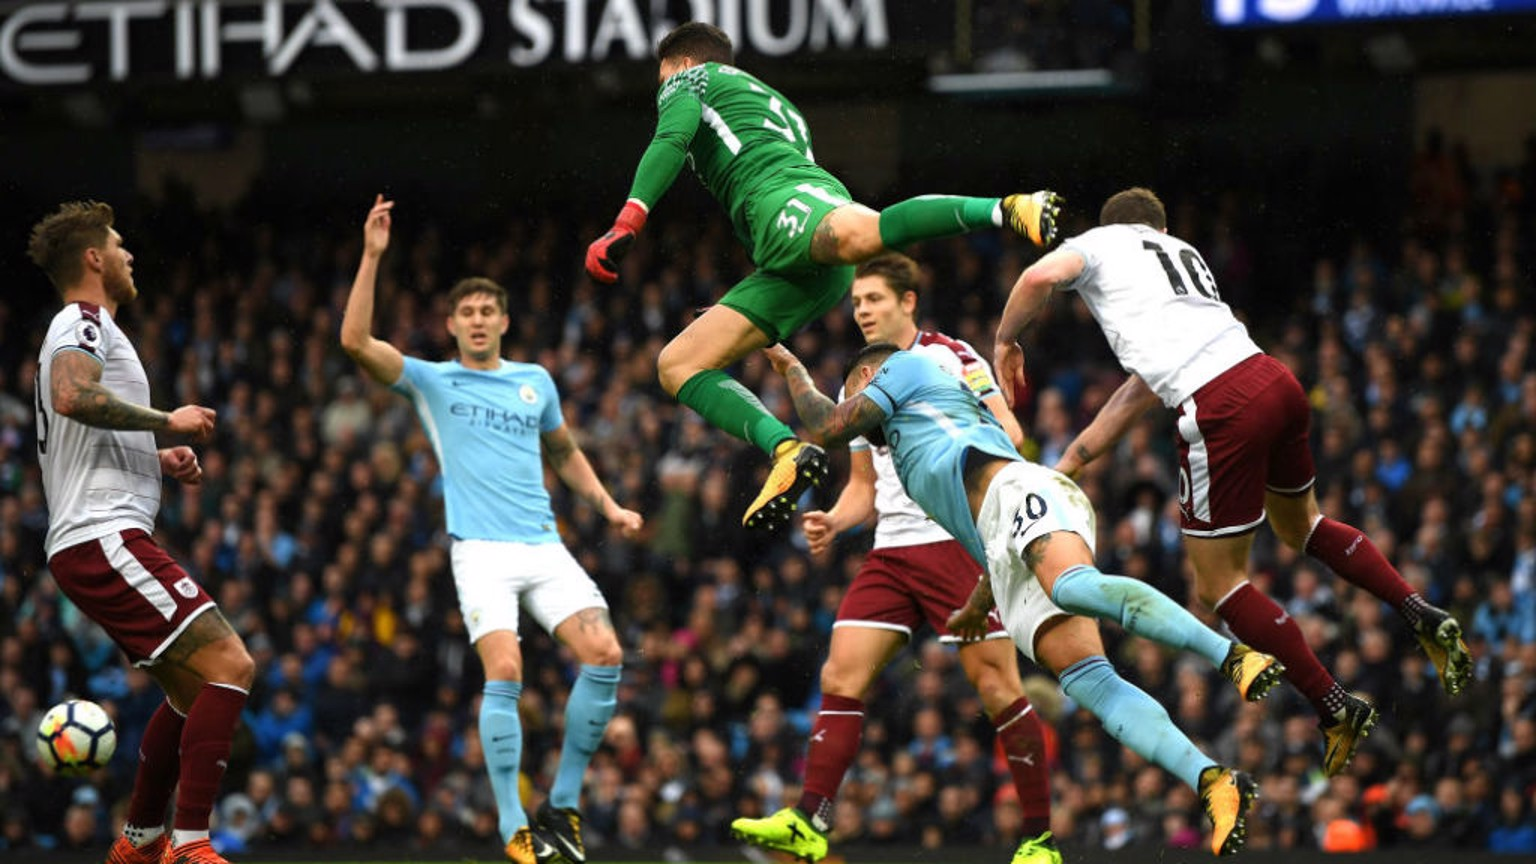 ACTION MAN: Ederson clears the danger for City in spectacular style